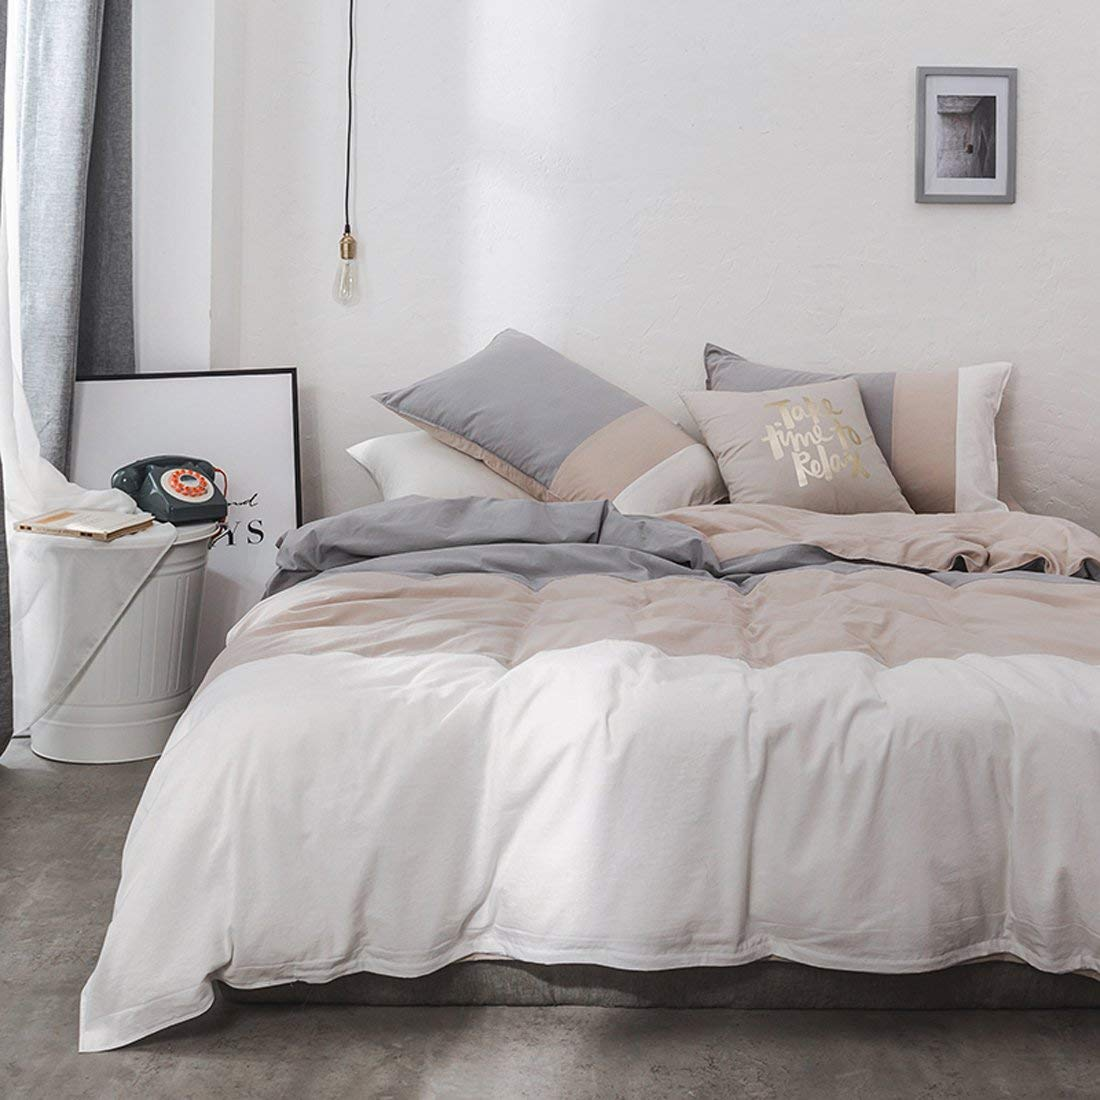 ughome Washed Cotton Duvet Cover King - 3 Piece Graduated Simple Style Bedding Set King,Soft Lightweight 1 Duvet Cover and 2 Pillow Shams(Grey,King)